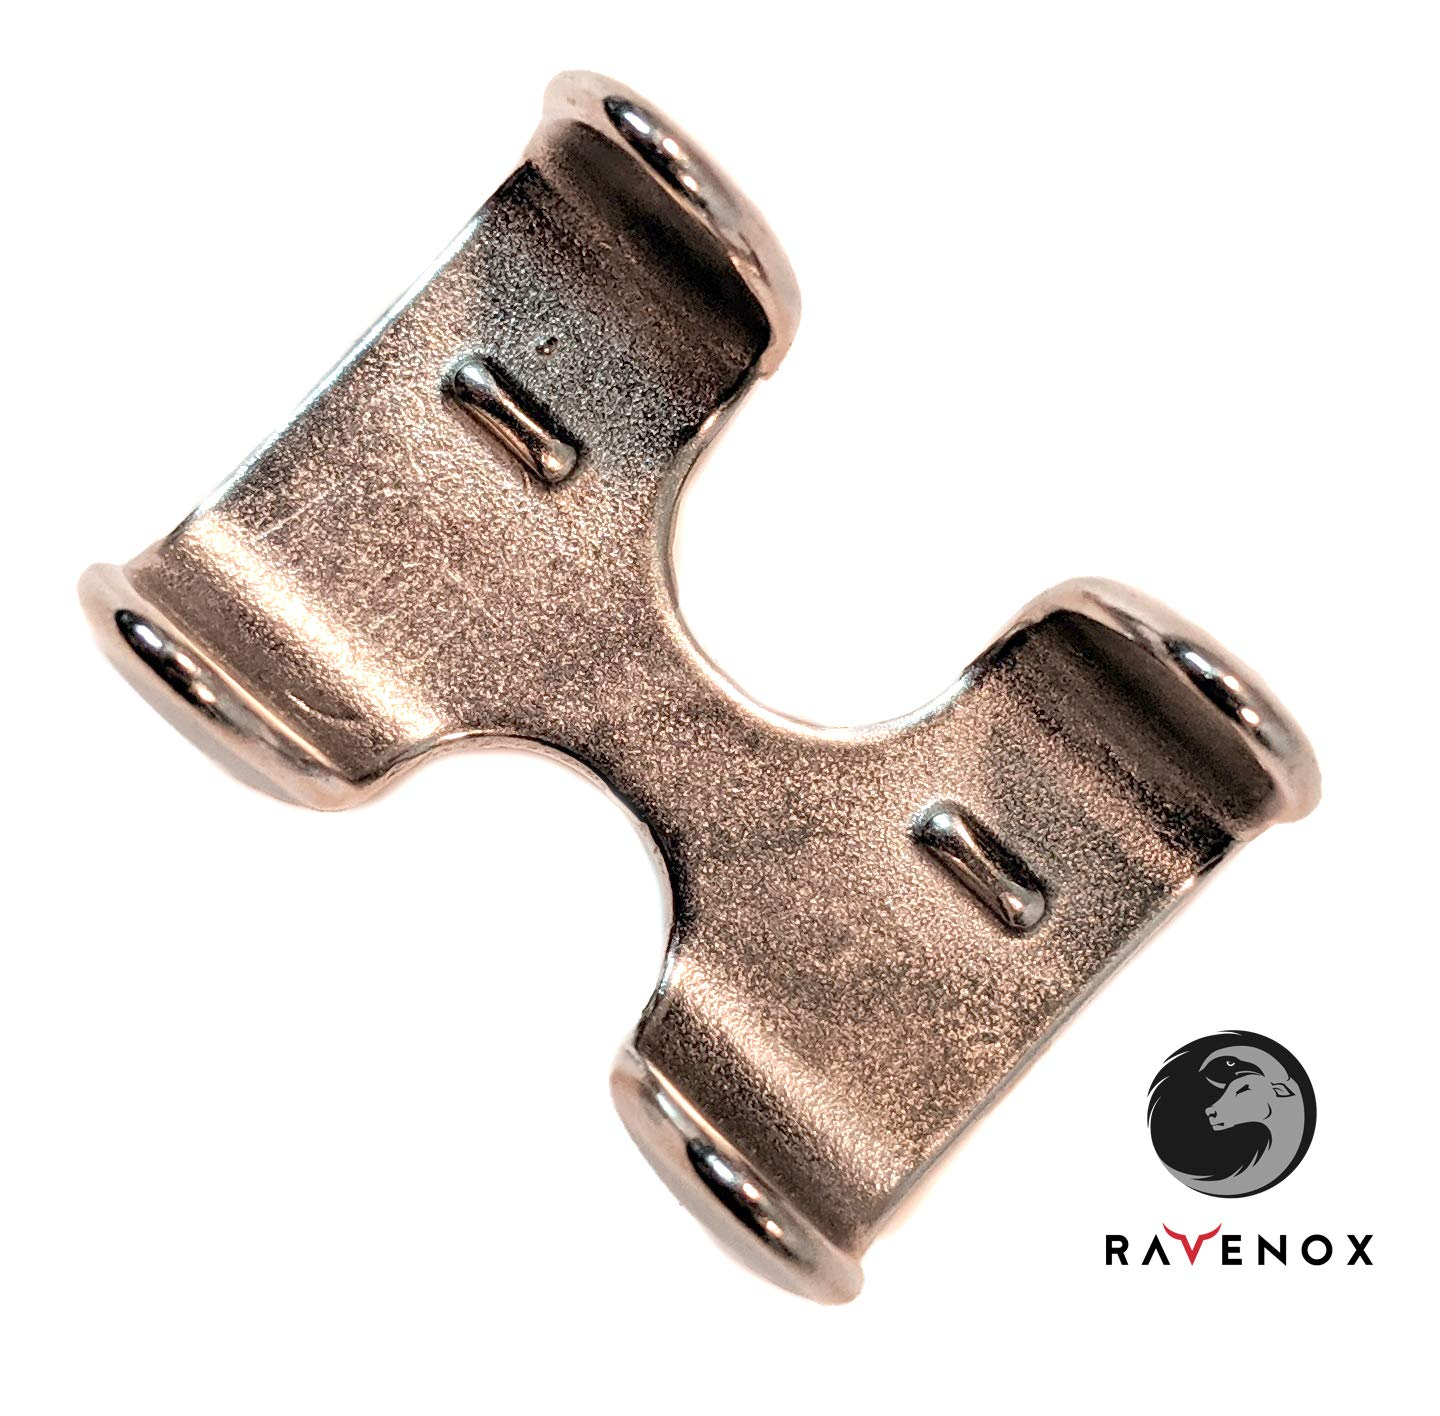 | Heavy Duty Brass Metal Clamp for 1//2-inch and 5//8-inch Ropes Ravenox Metal Clips for Rope | Cords Zinc Nickel Plate Over Solid Brass Nickel Plated Double Rope Clamps Stainless Steel 2 Pack